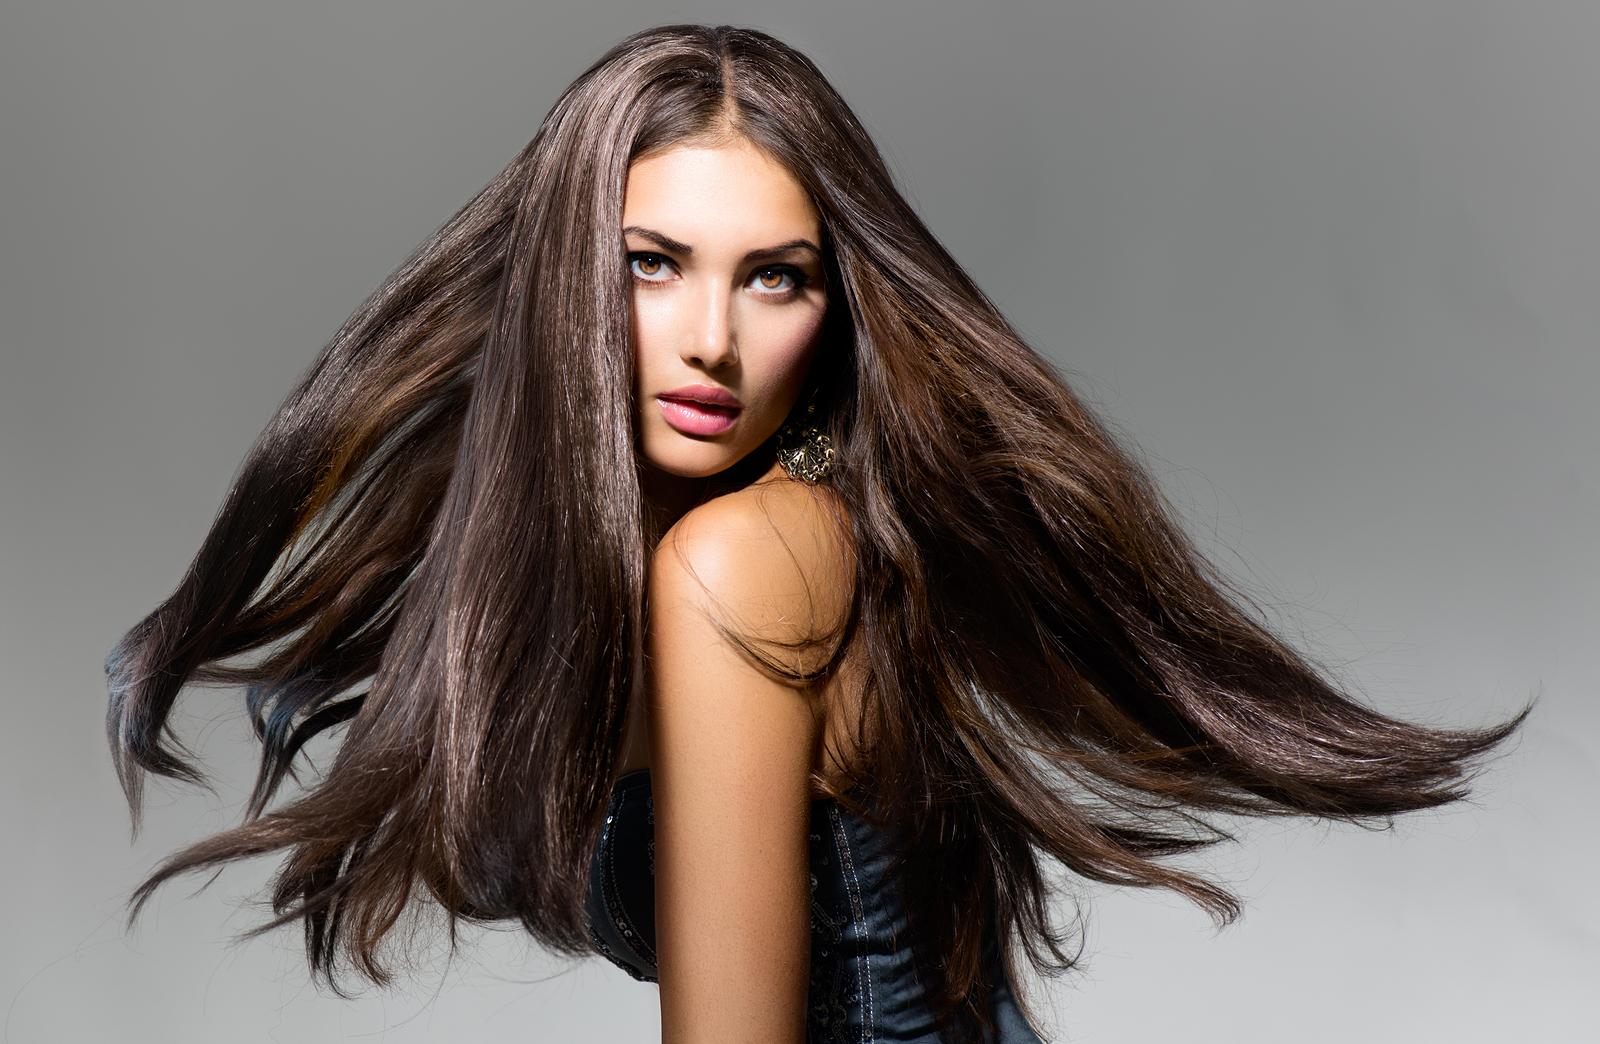 Fashion Model Girl Portrait with Long Blowing Hair. Glamour Bea